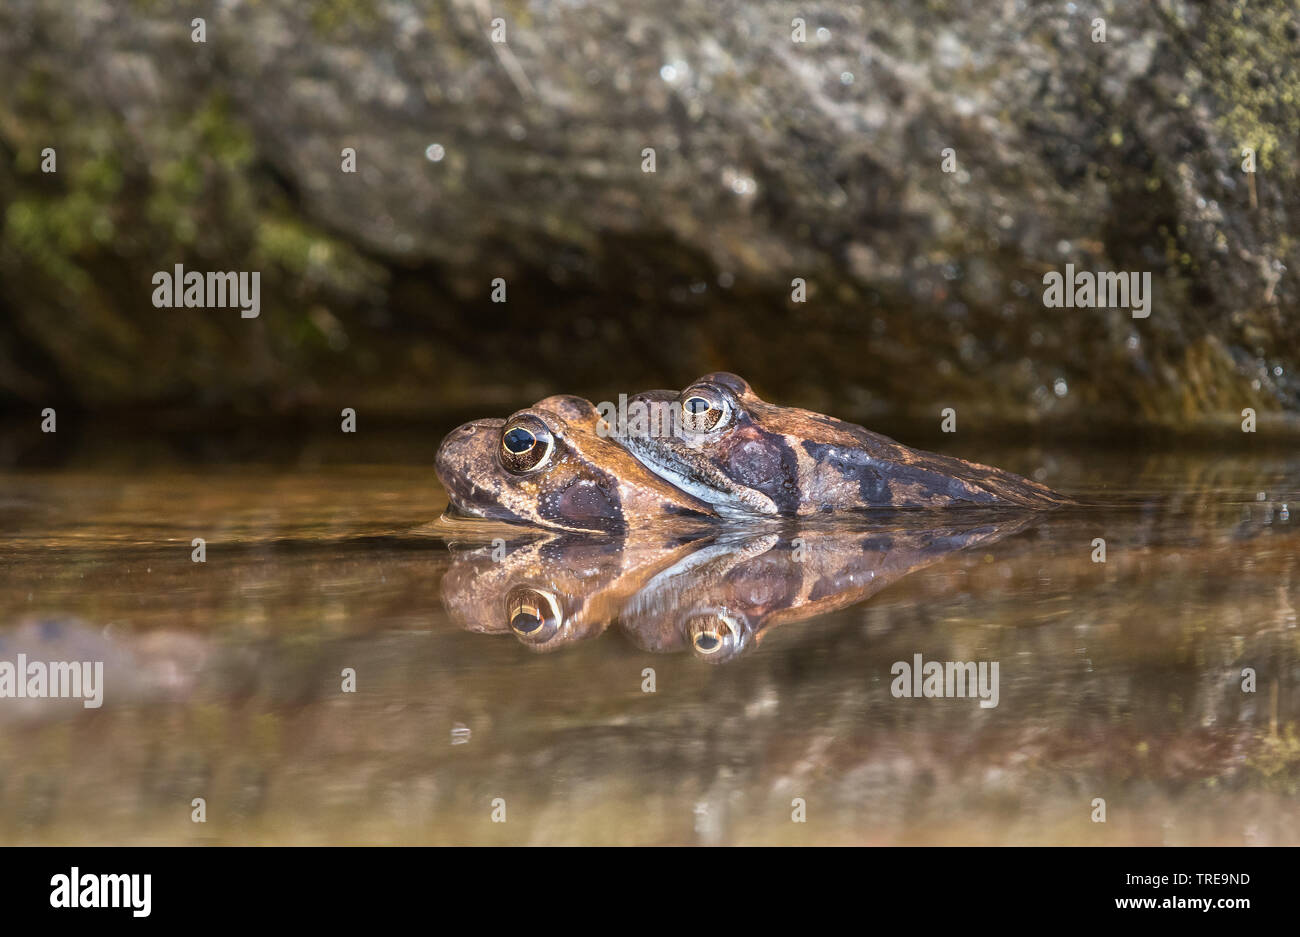 Grasfrosch, Gras-Frosch (Rana temporaria), Paar im Laichgewaesser, Italien | common frog, grass frog (Rana temporaria), couple in spawning water, Ital - Stock Image